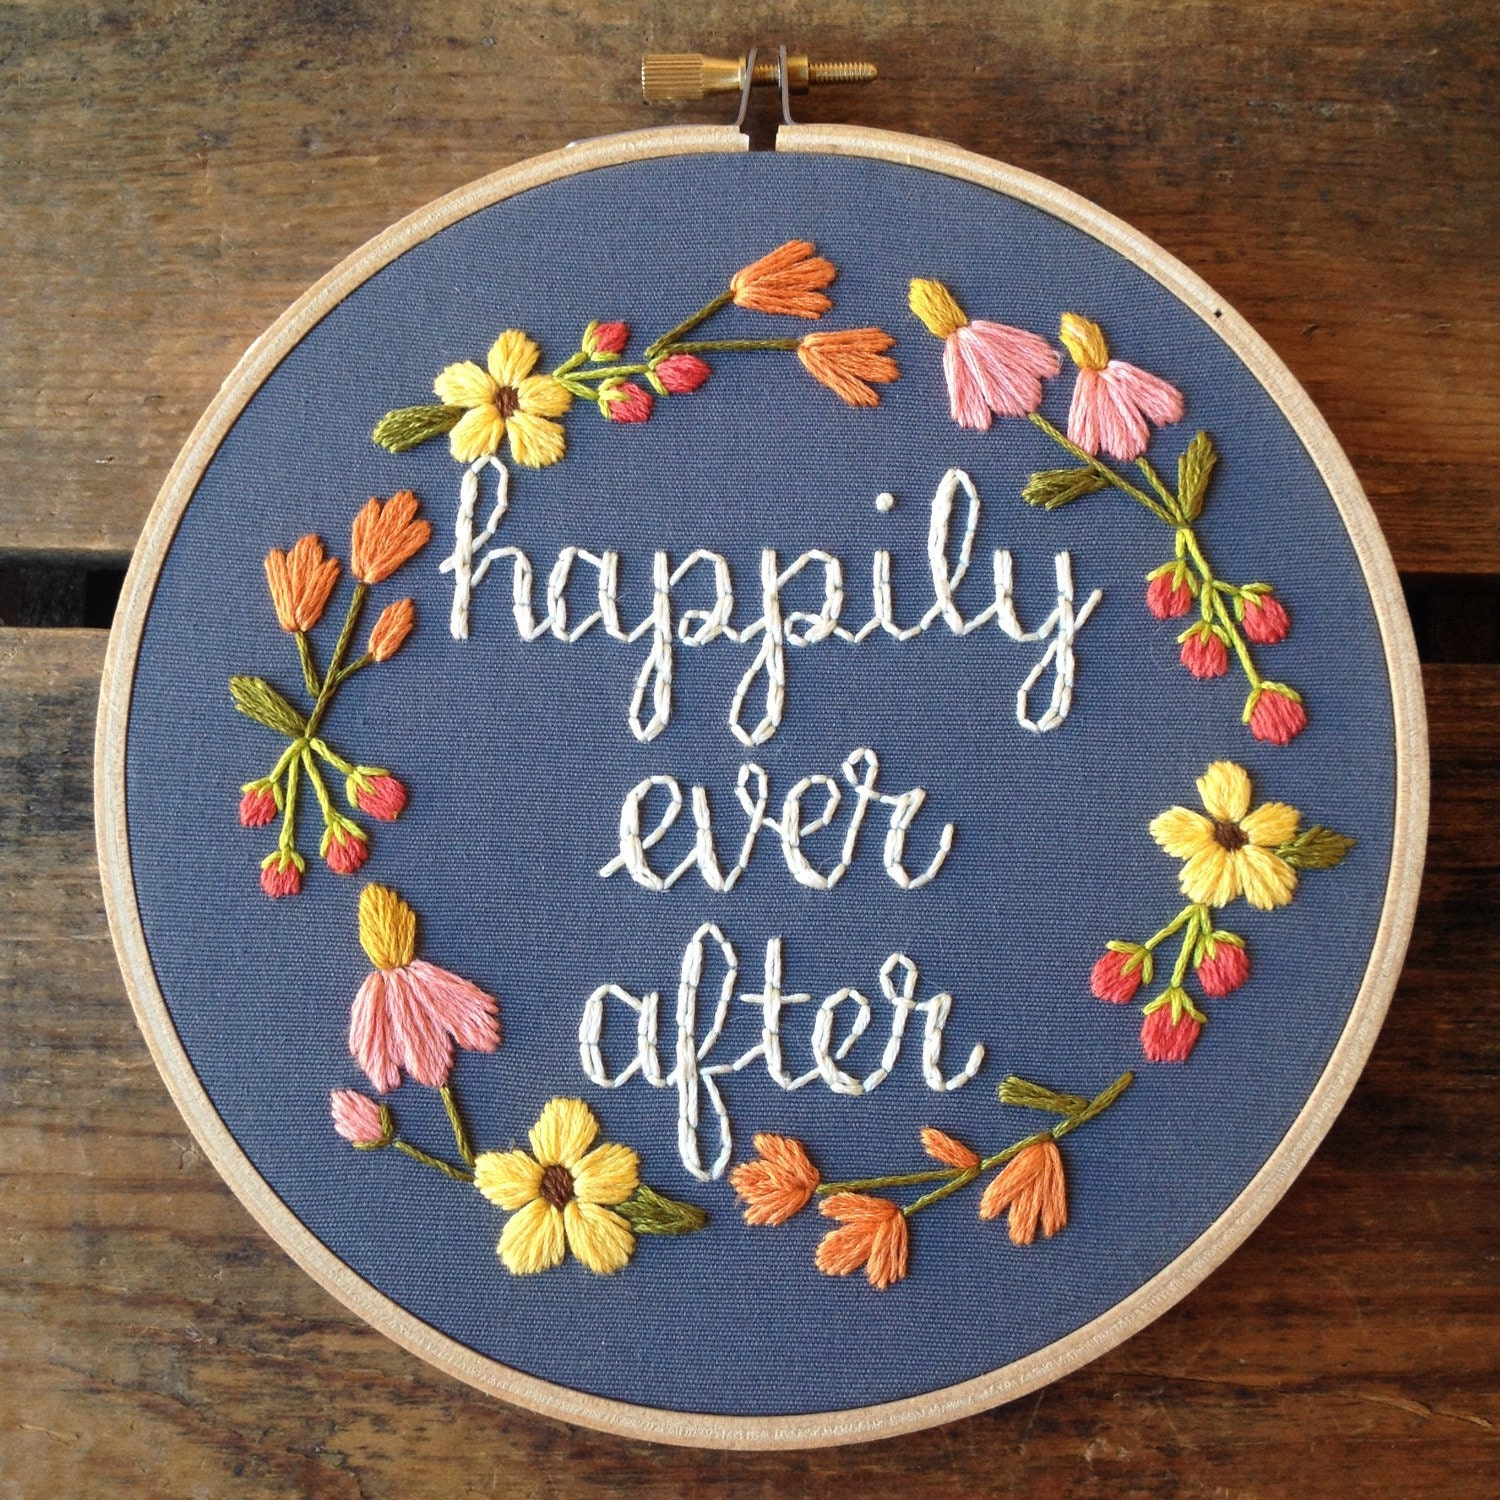 Happily ever after embroidery hoop art by bugandbeanstitching